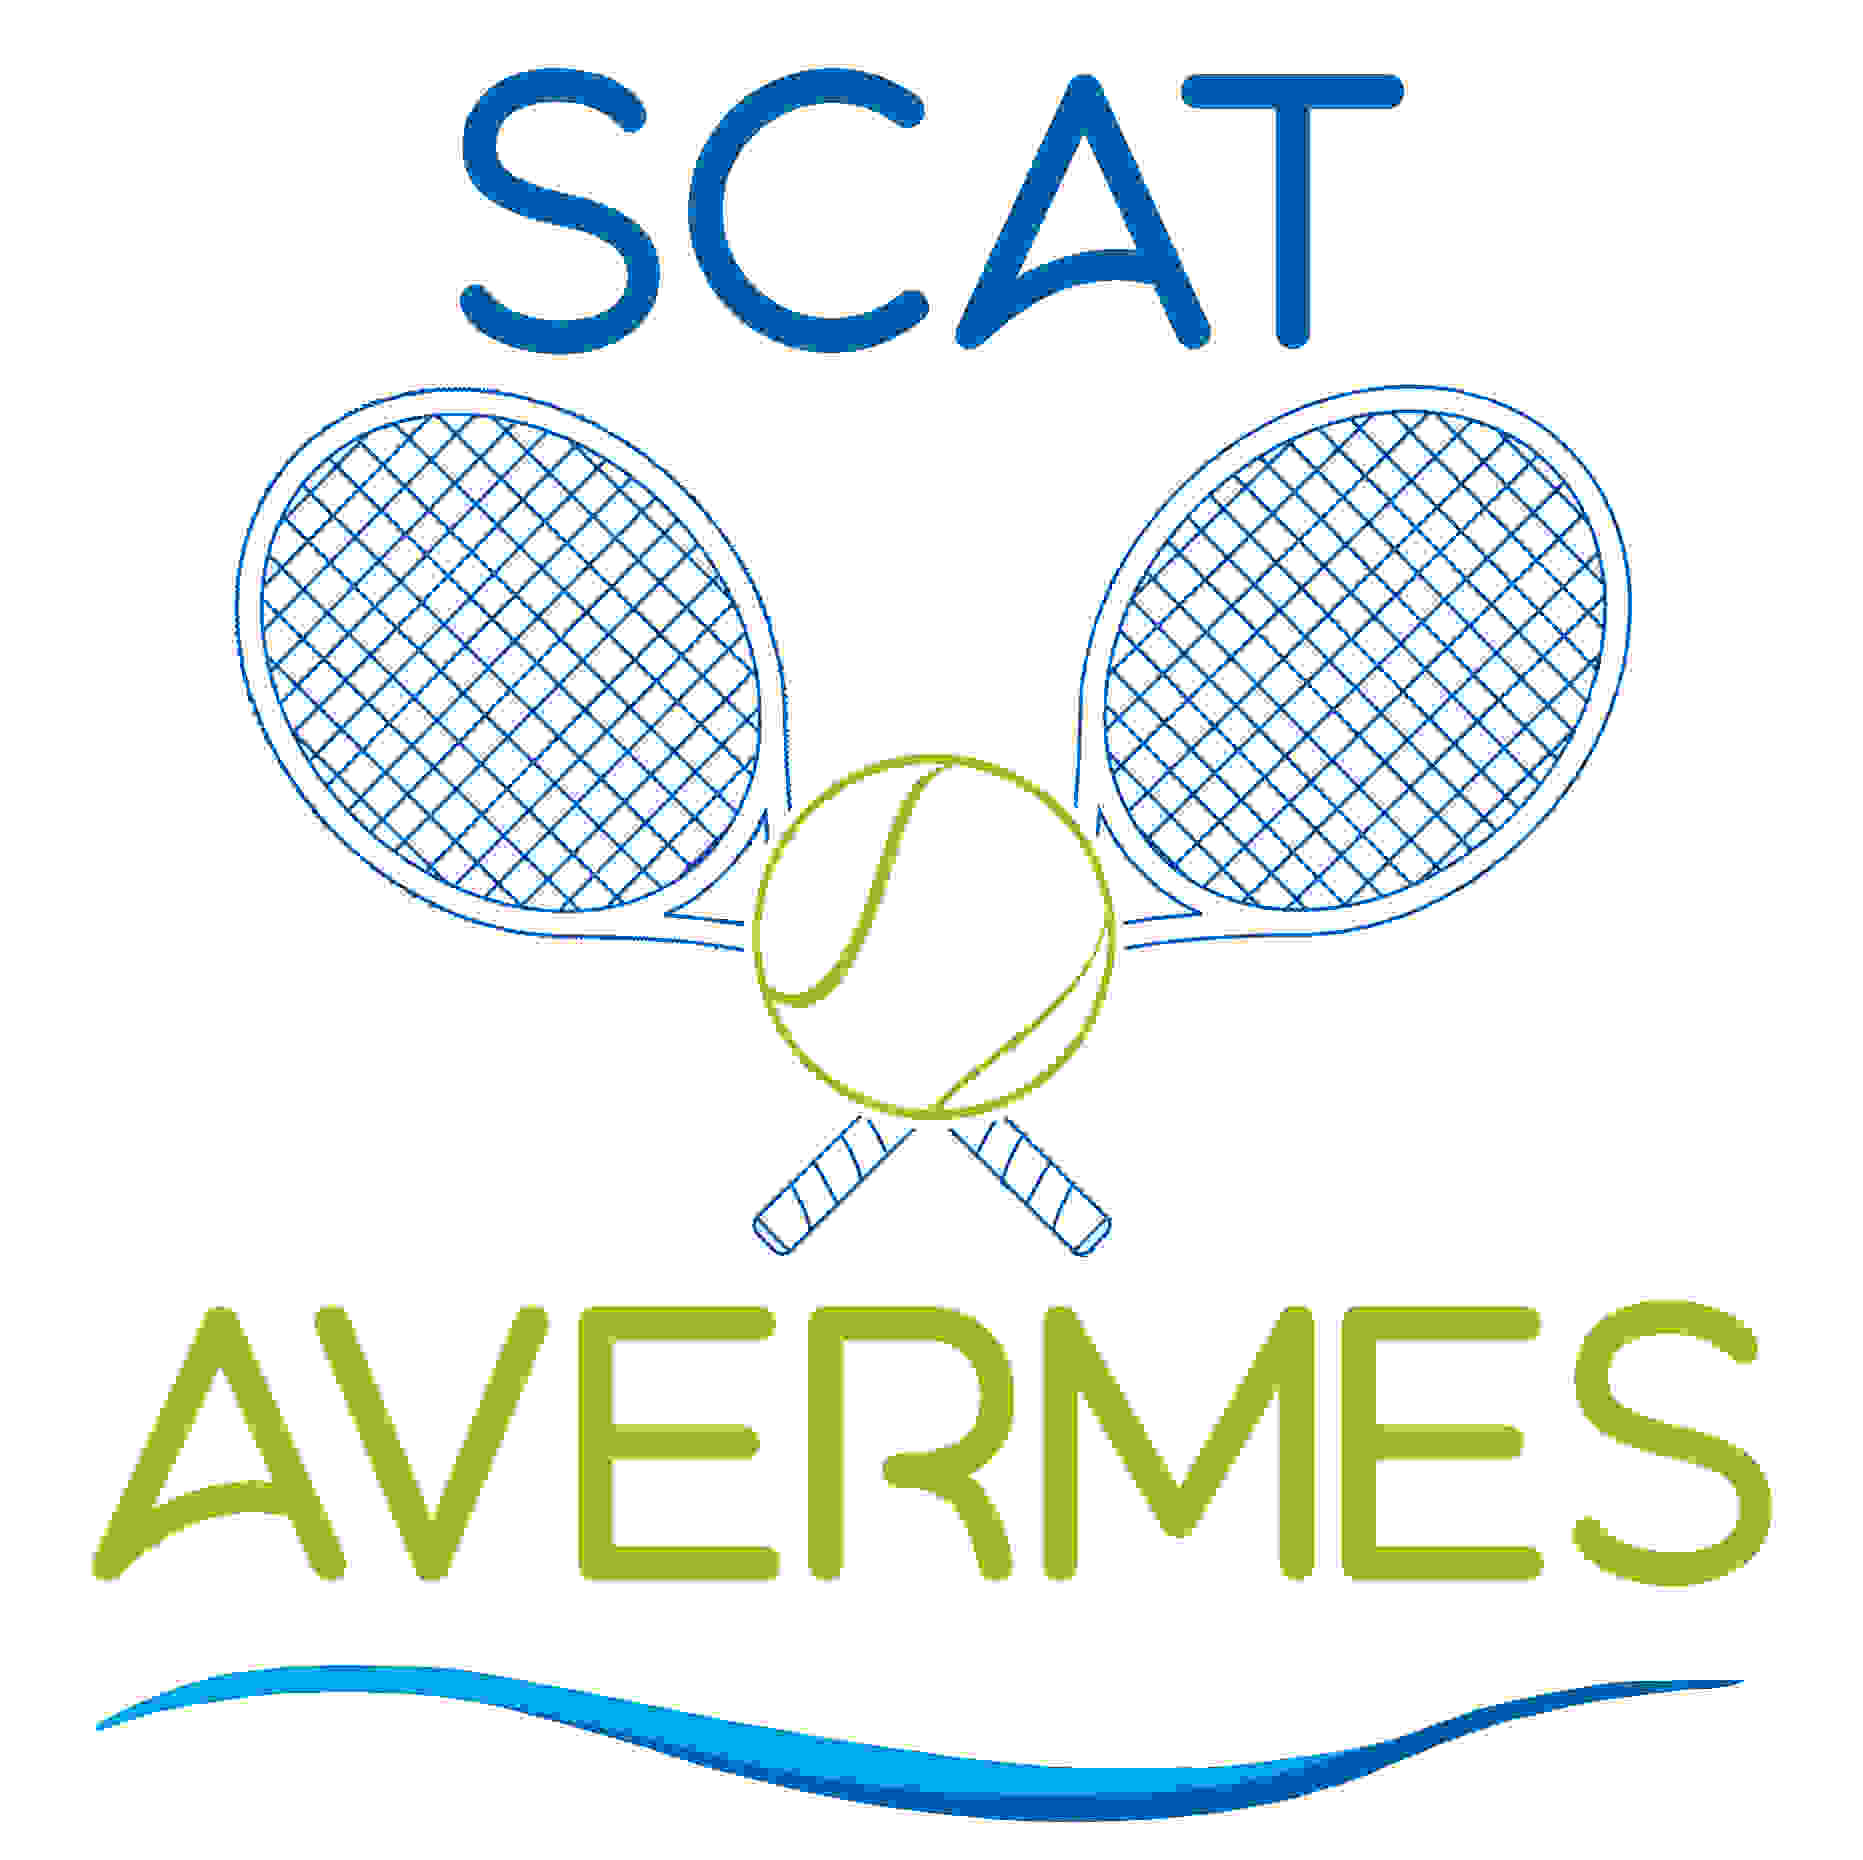 SC Avermes Tennis & Beach Tennis